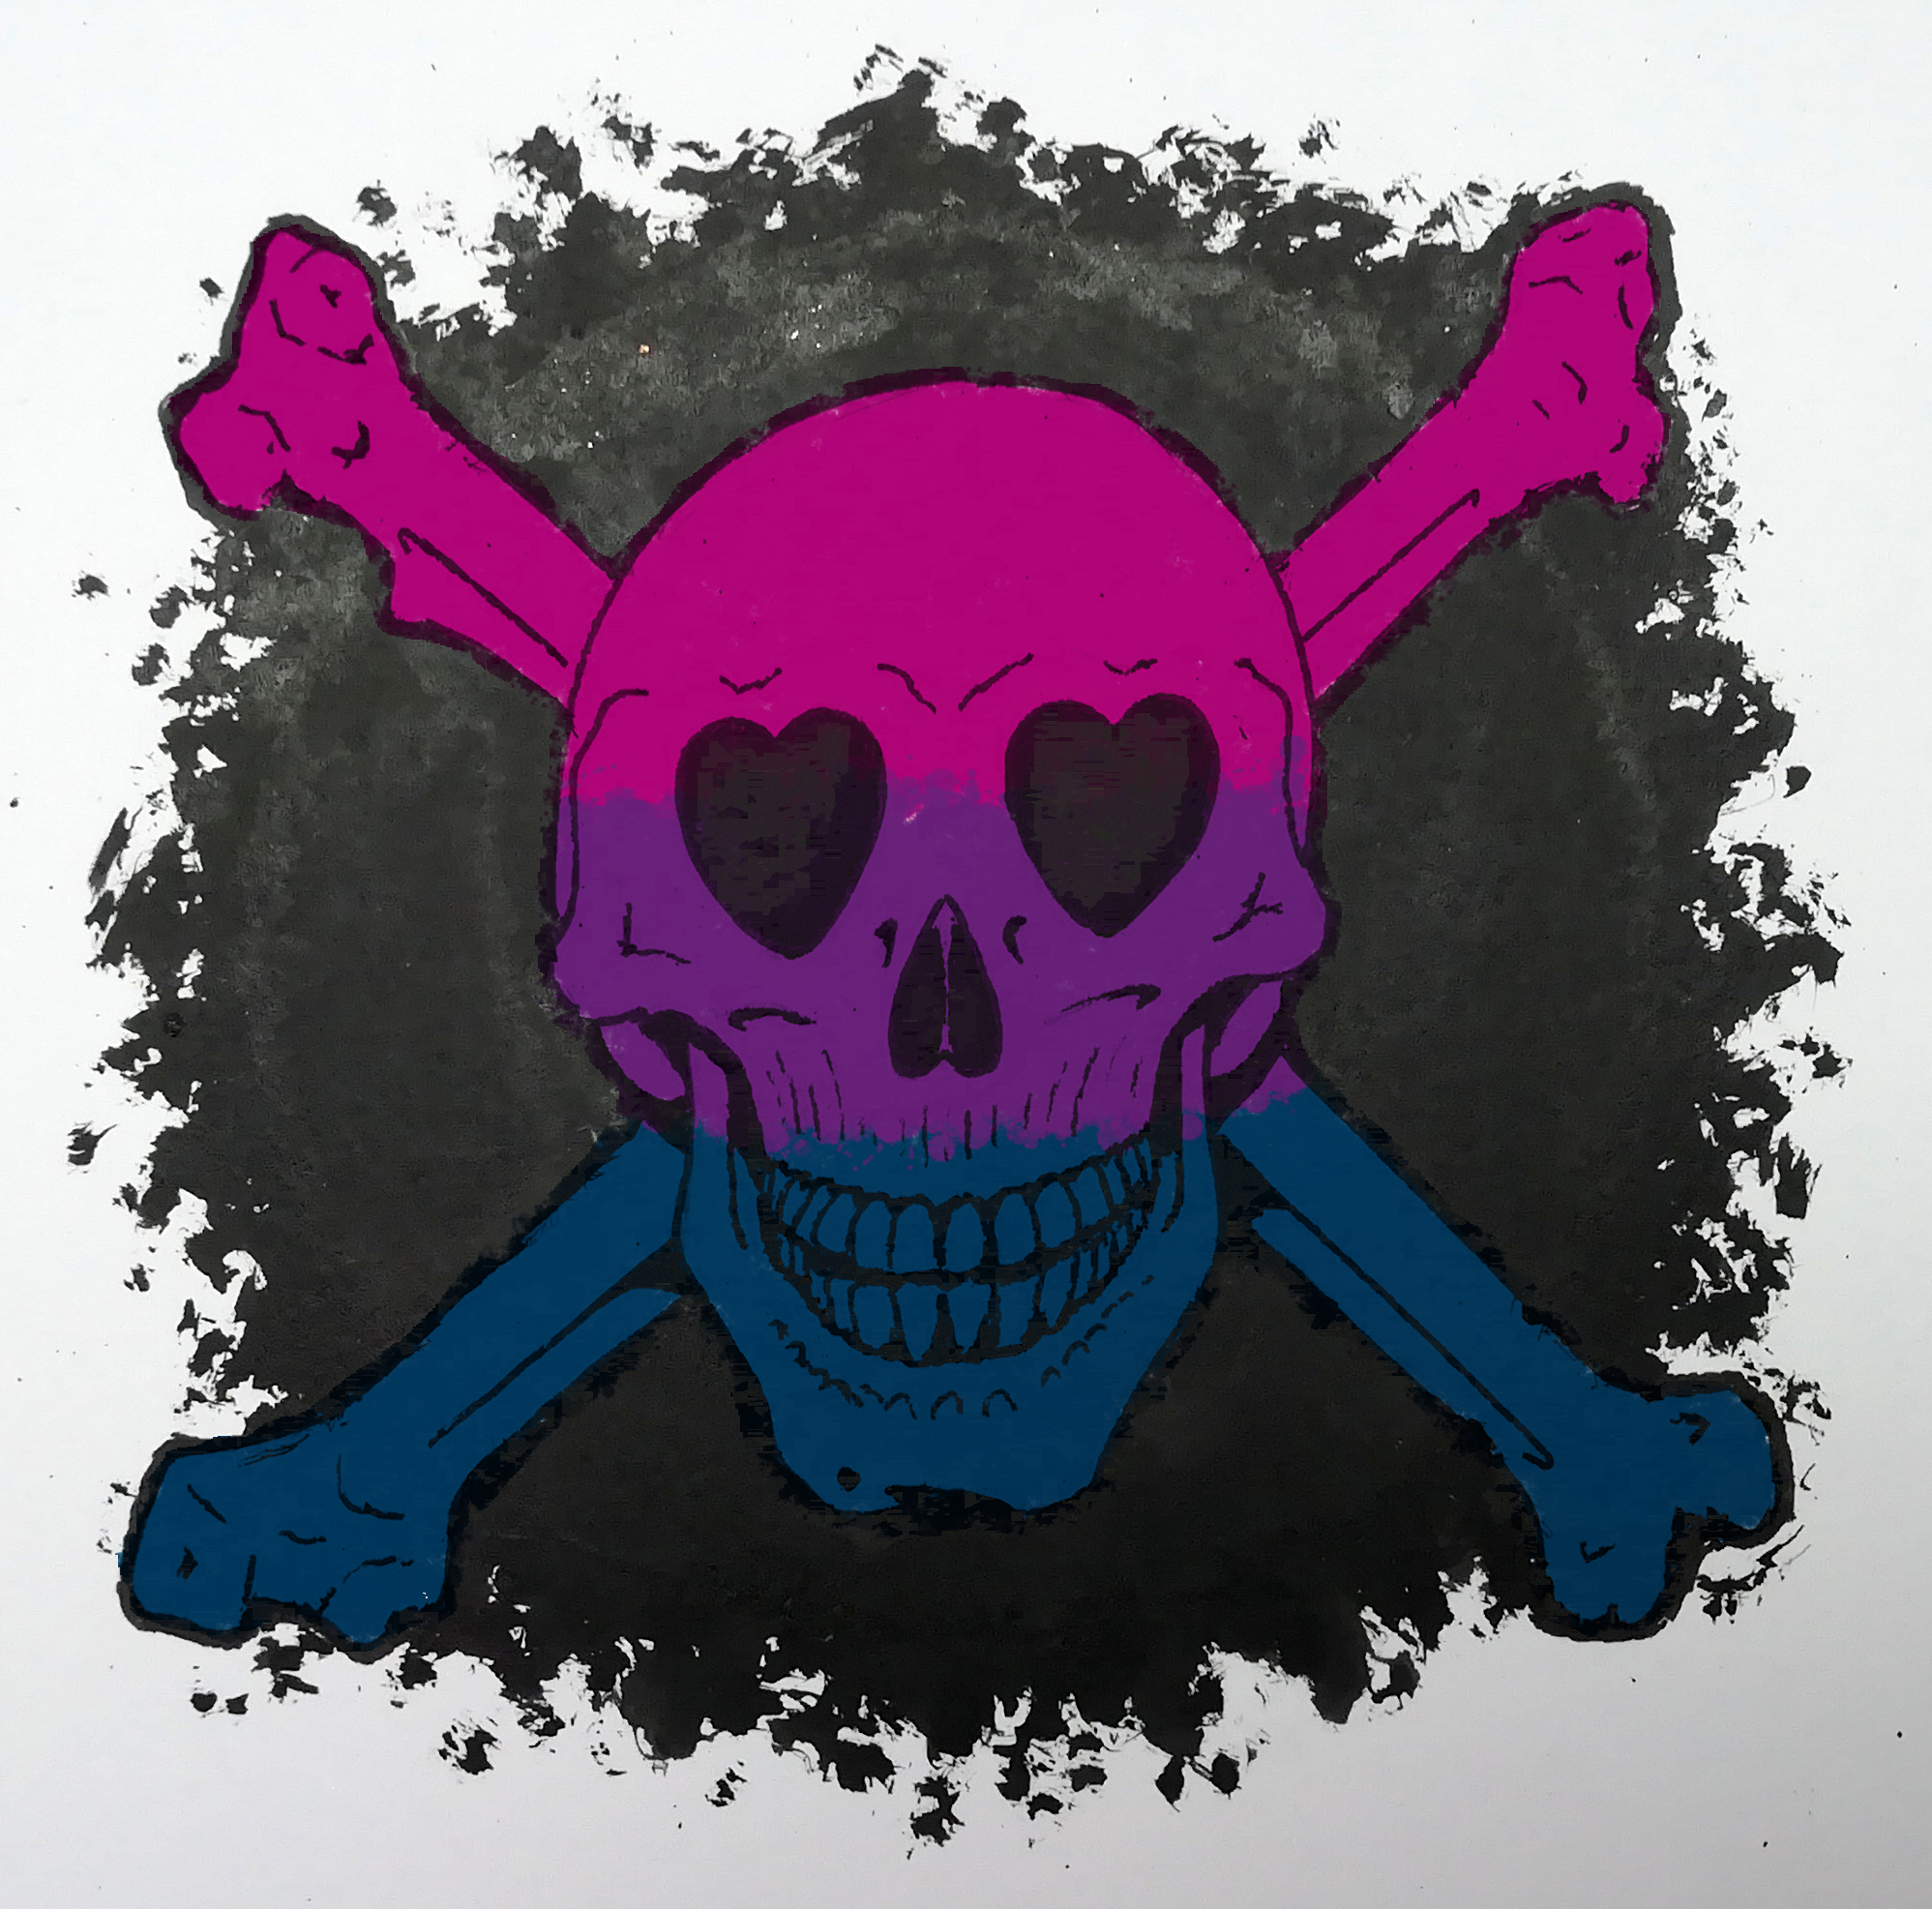 Bisexual Heart Skull